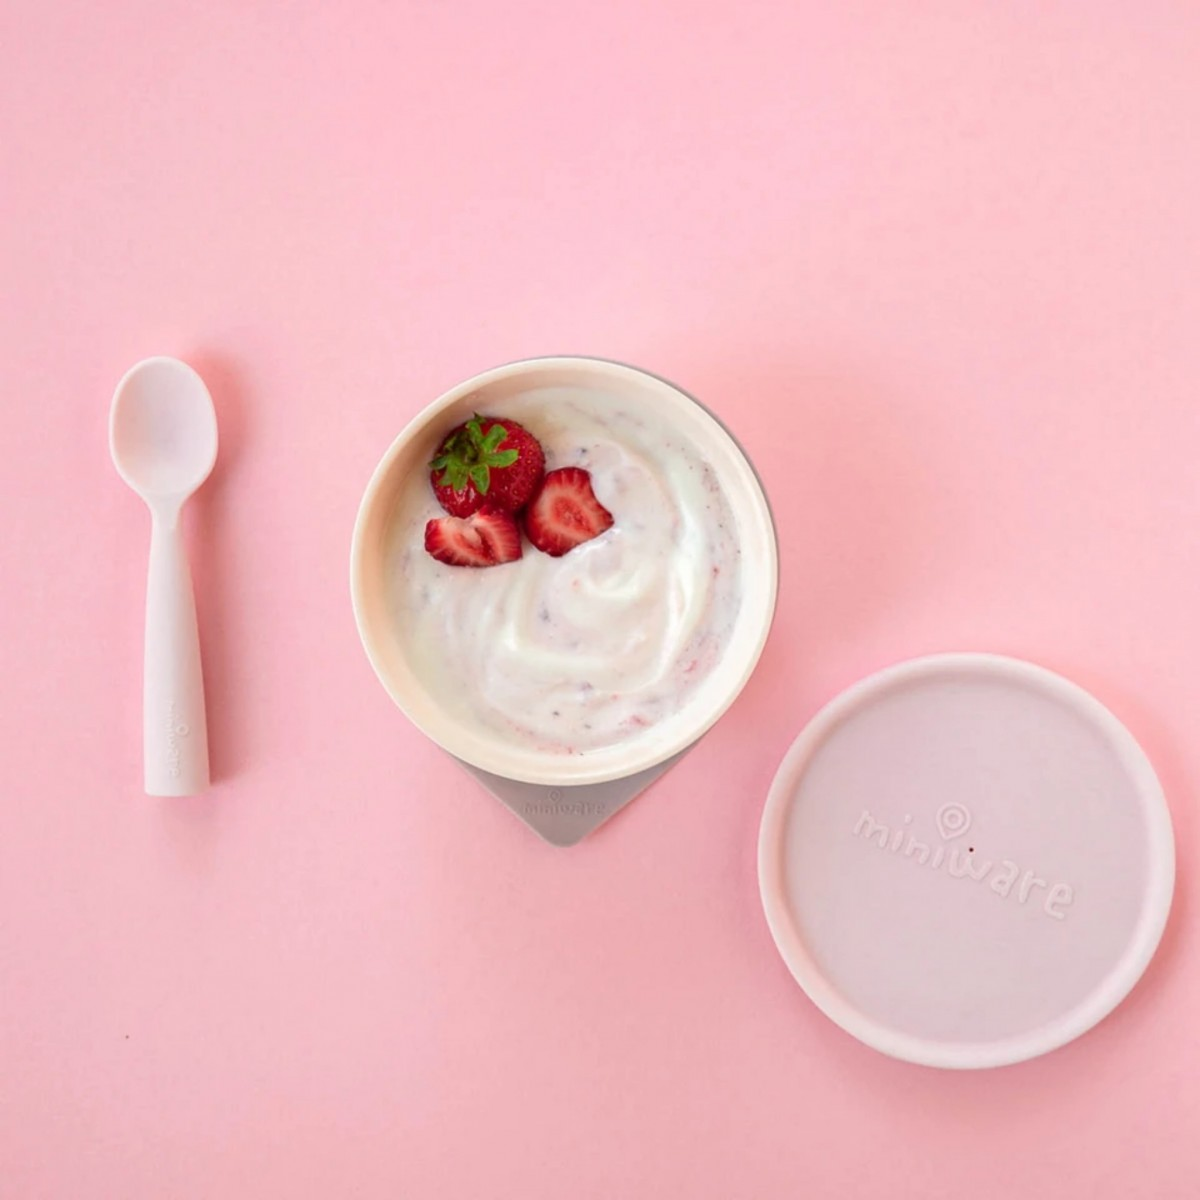 First Bite Suction Bowl With Spoon Feeding Set Cotton Candy- Cotton Candy